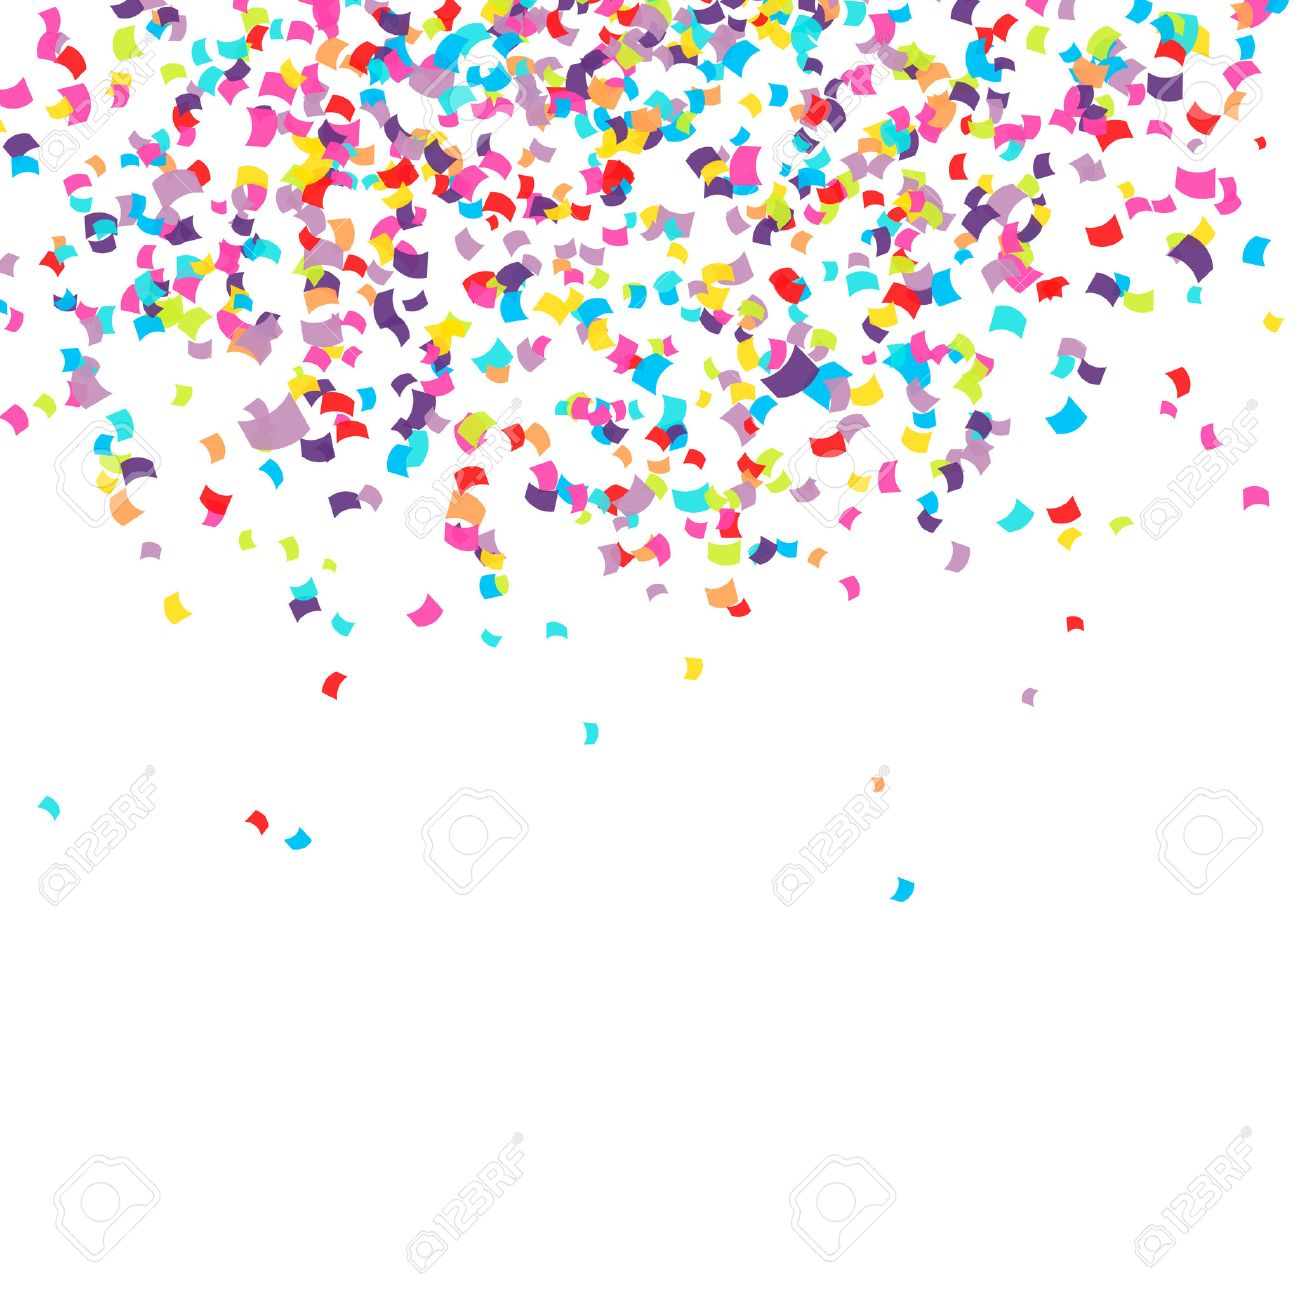 Abstract background with falling confetti.